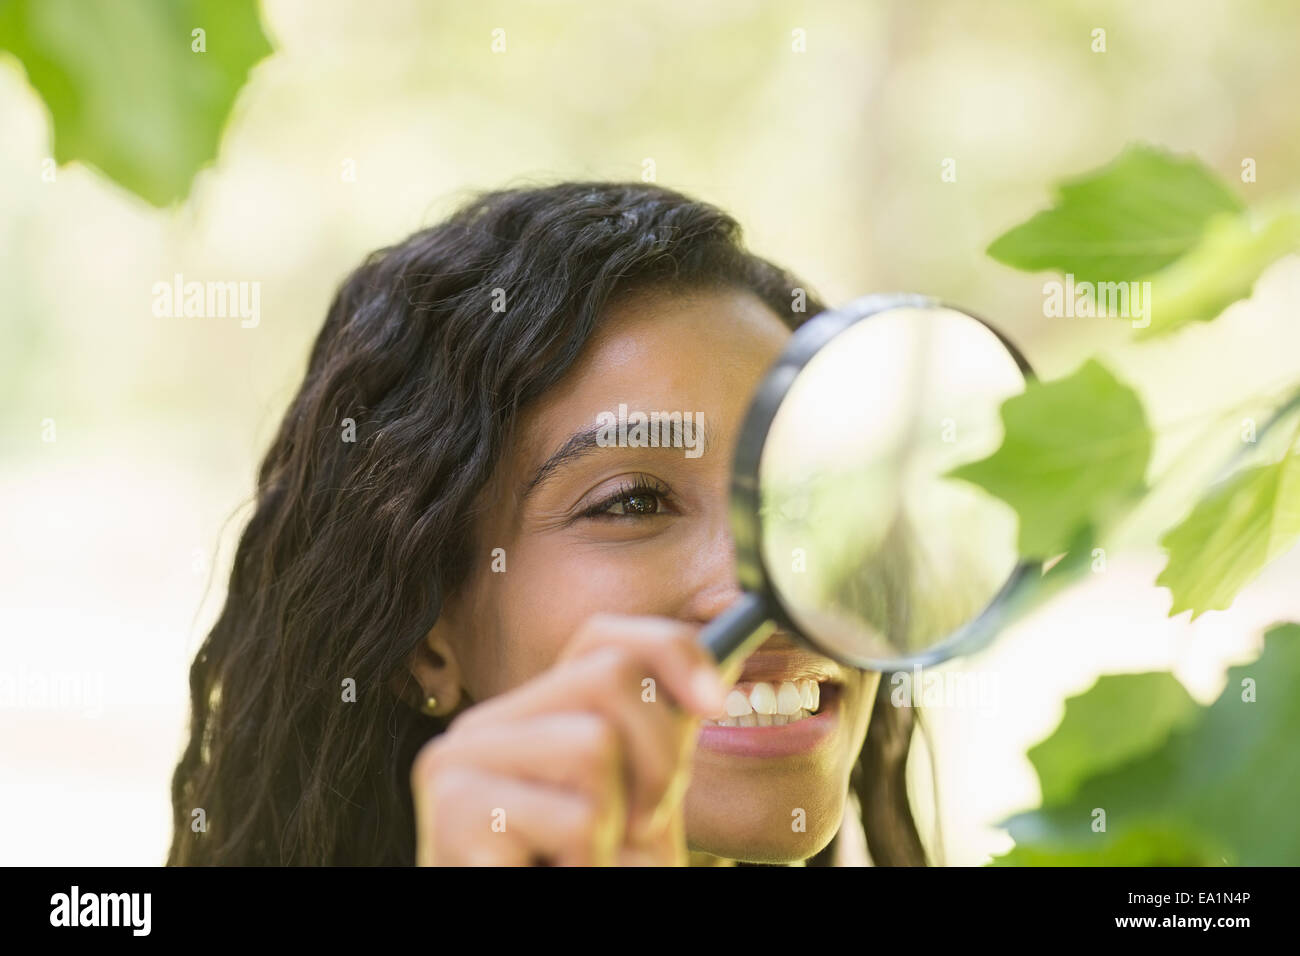 Woman examining leaves with magnifying glass - Stock Image